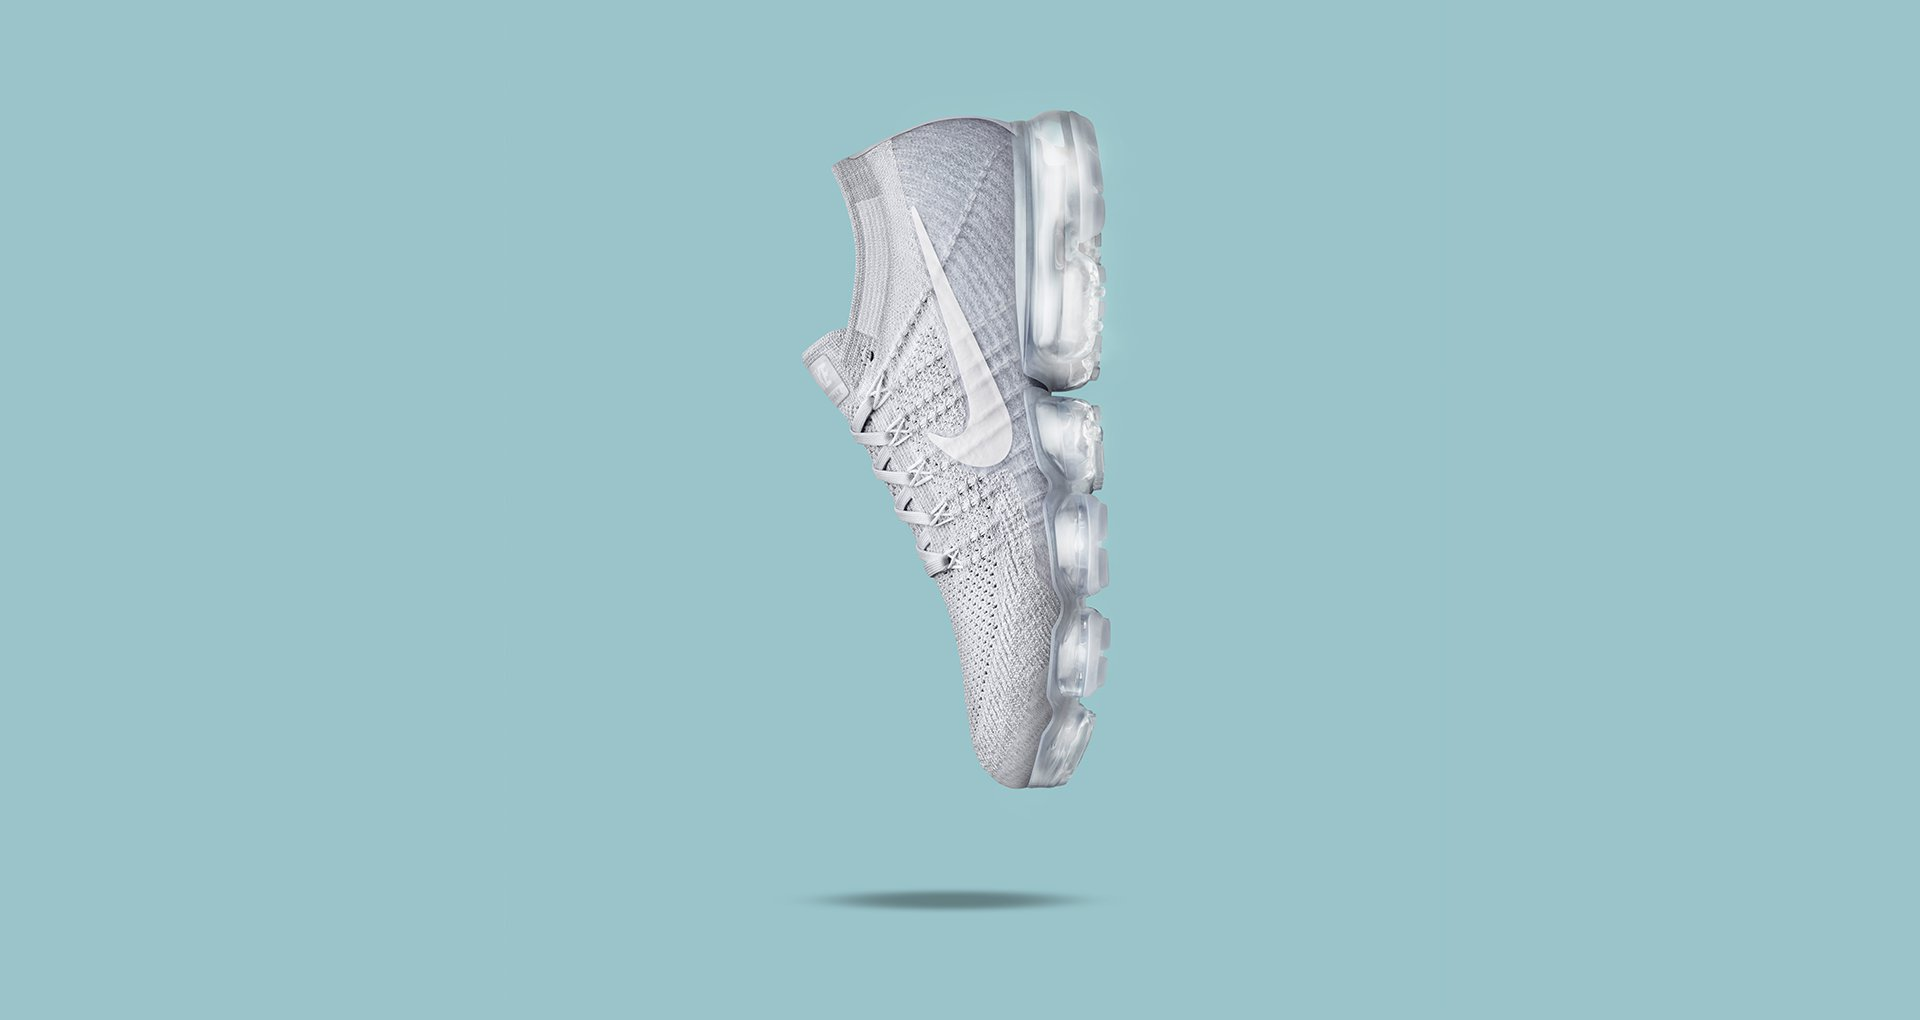 SP17_NSW_Vapormax_M_Lead_Des_1920x1020